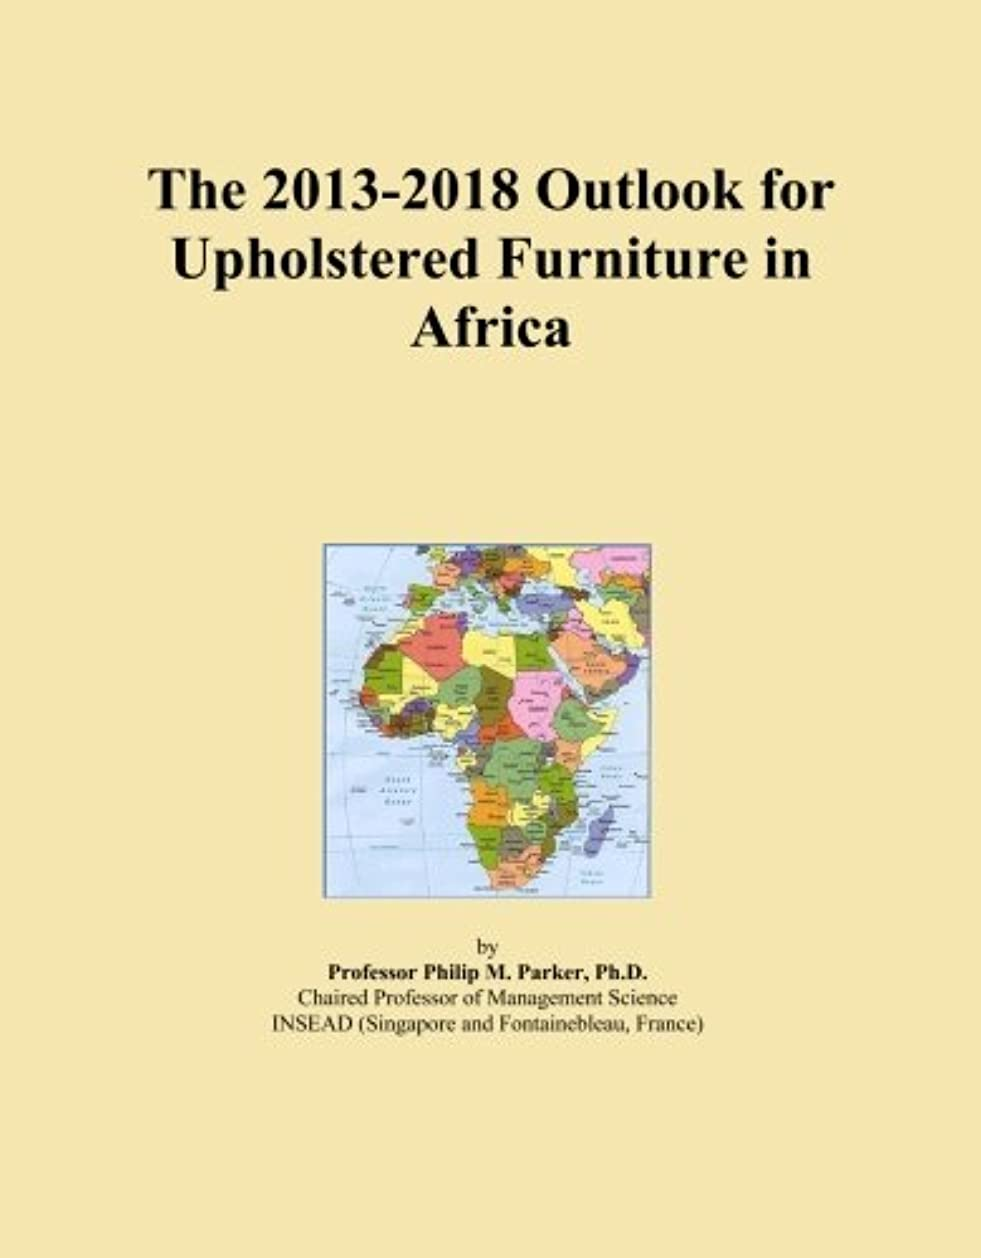 例ハンバーガースナッチThe 2013-2018 Outlook for Upholstered Furniture in Africa